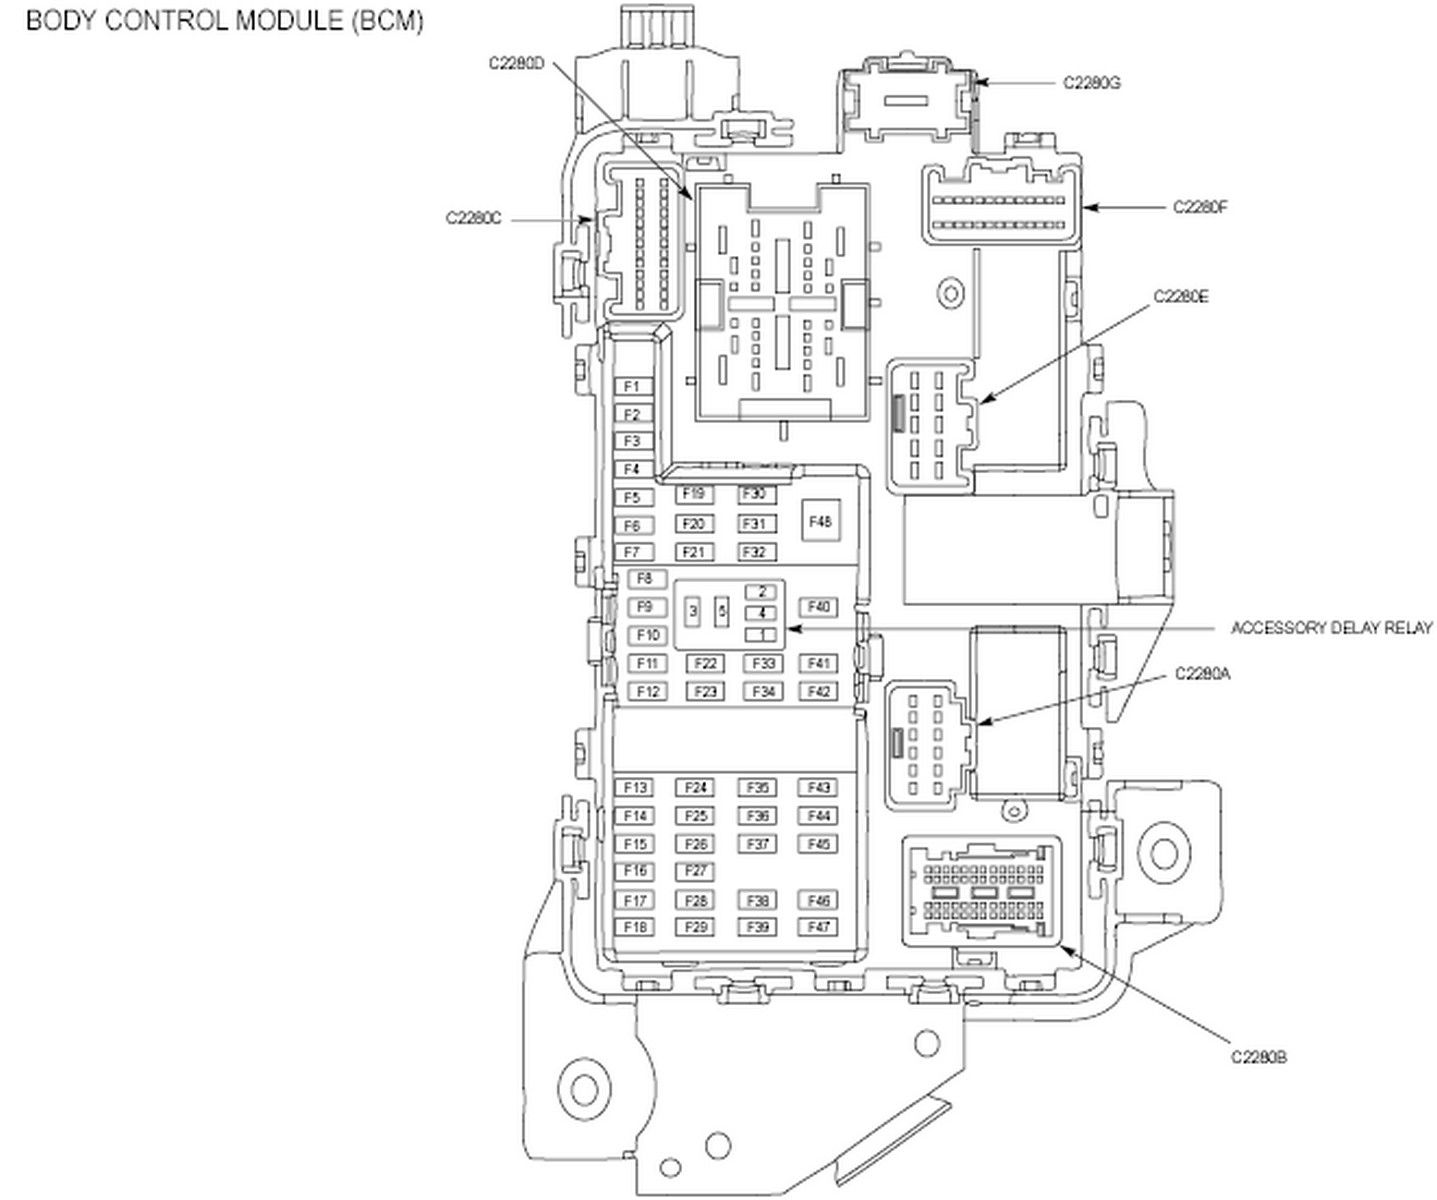 11 Superduty Mirror Wiring Diagram